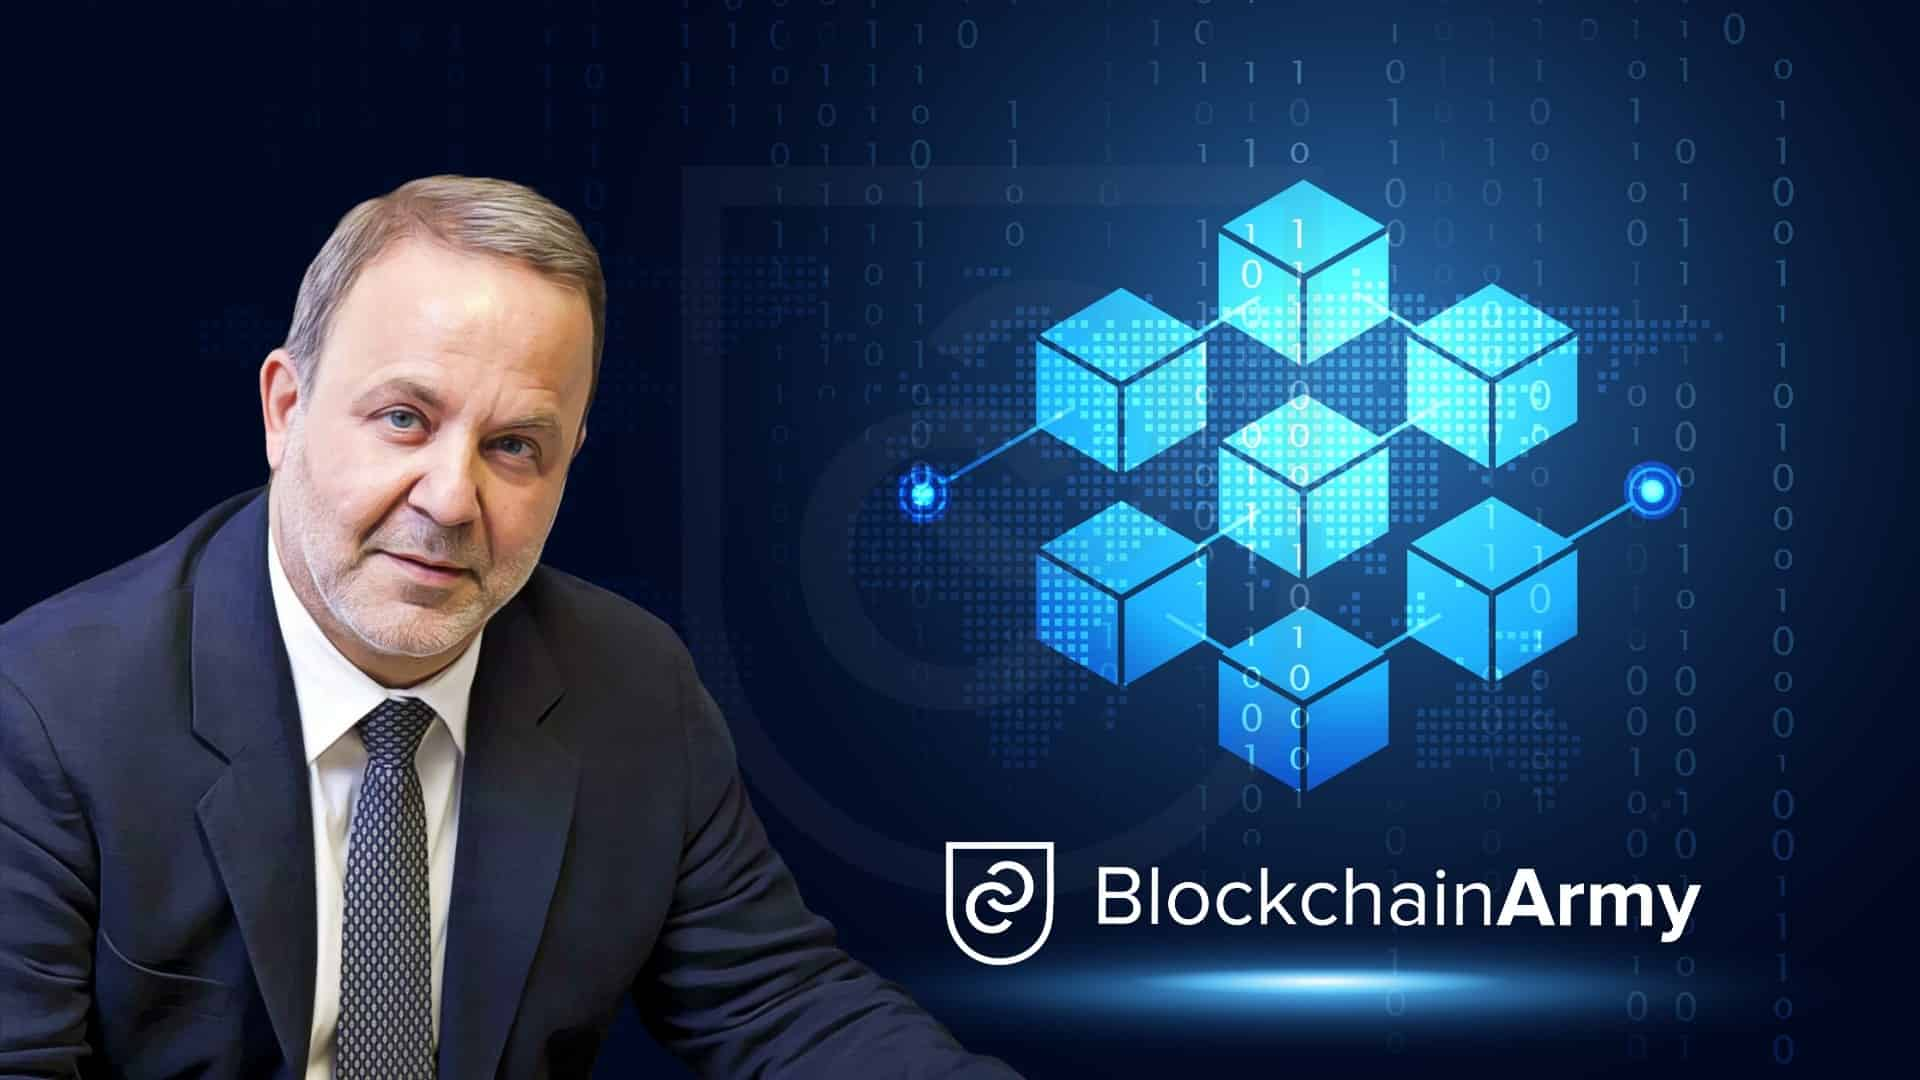 Erol User Explains the Importance of Blockchain in Logistics Industry